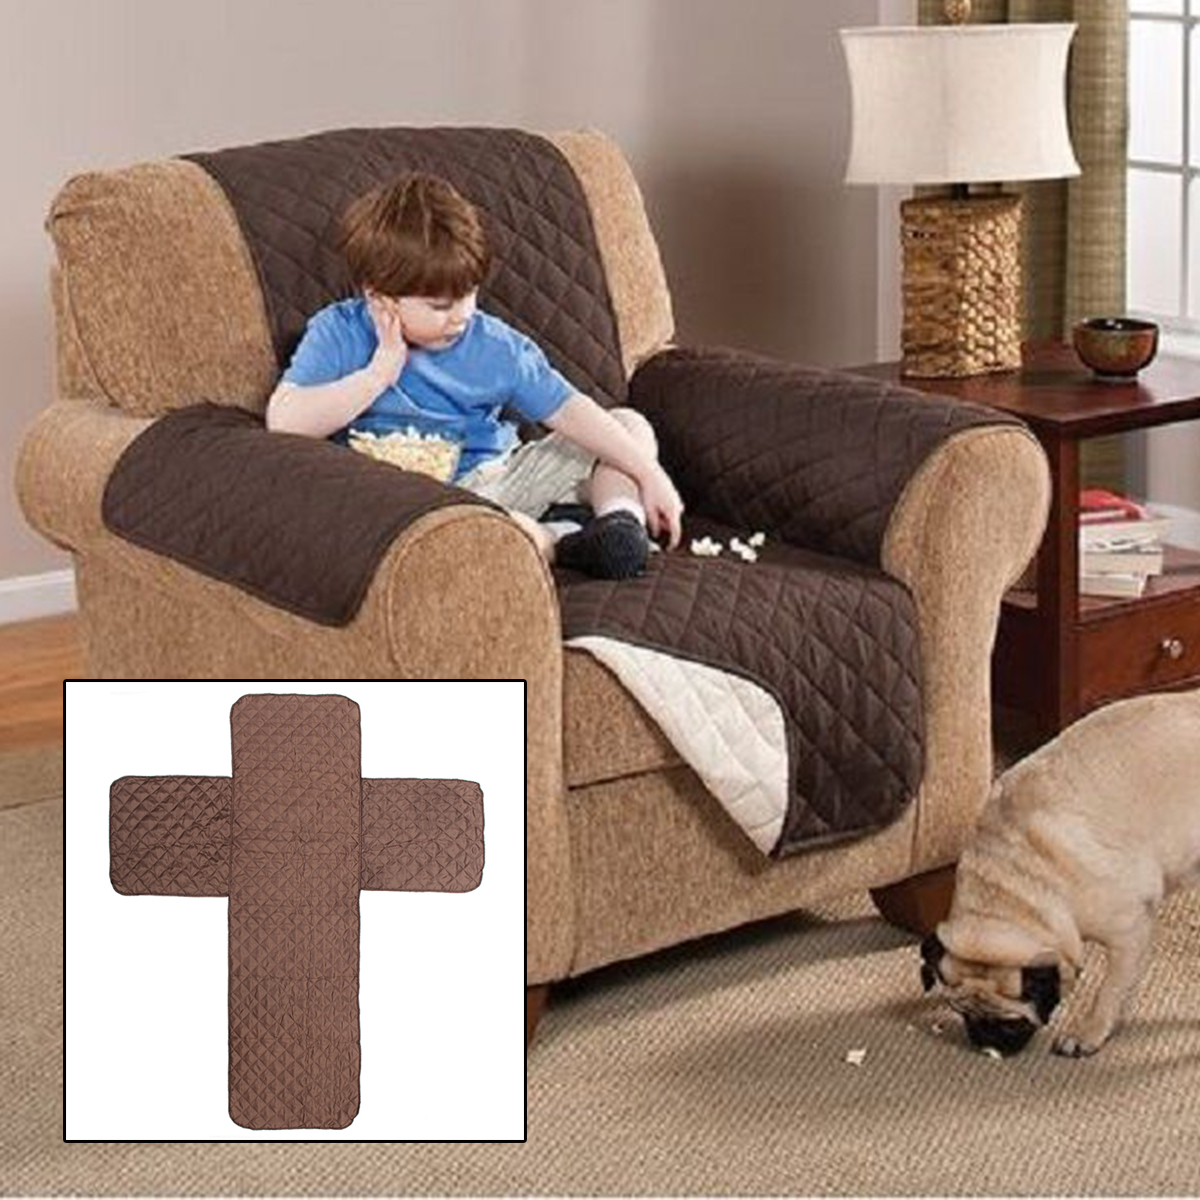 3SZIE QUILTED SOFA COVER CHAIR THROW PET DOG